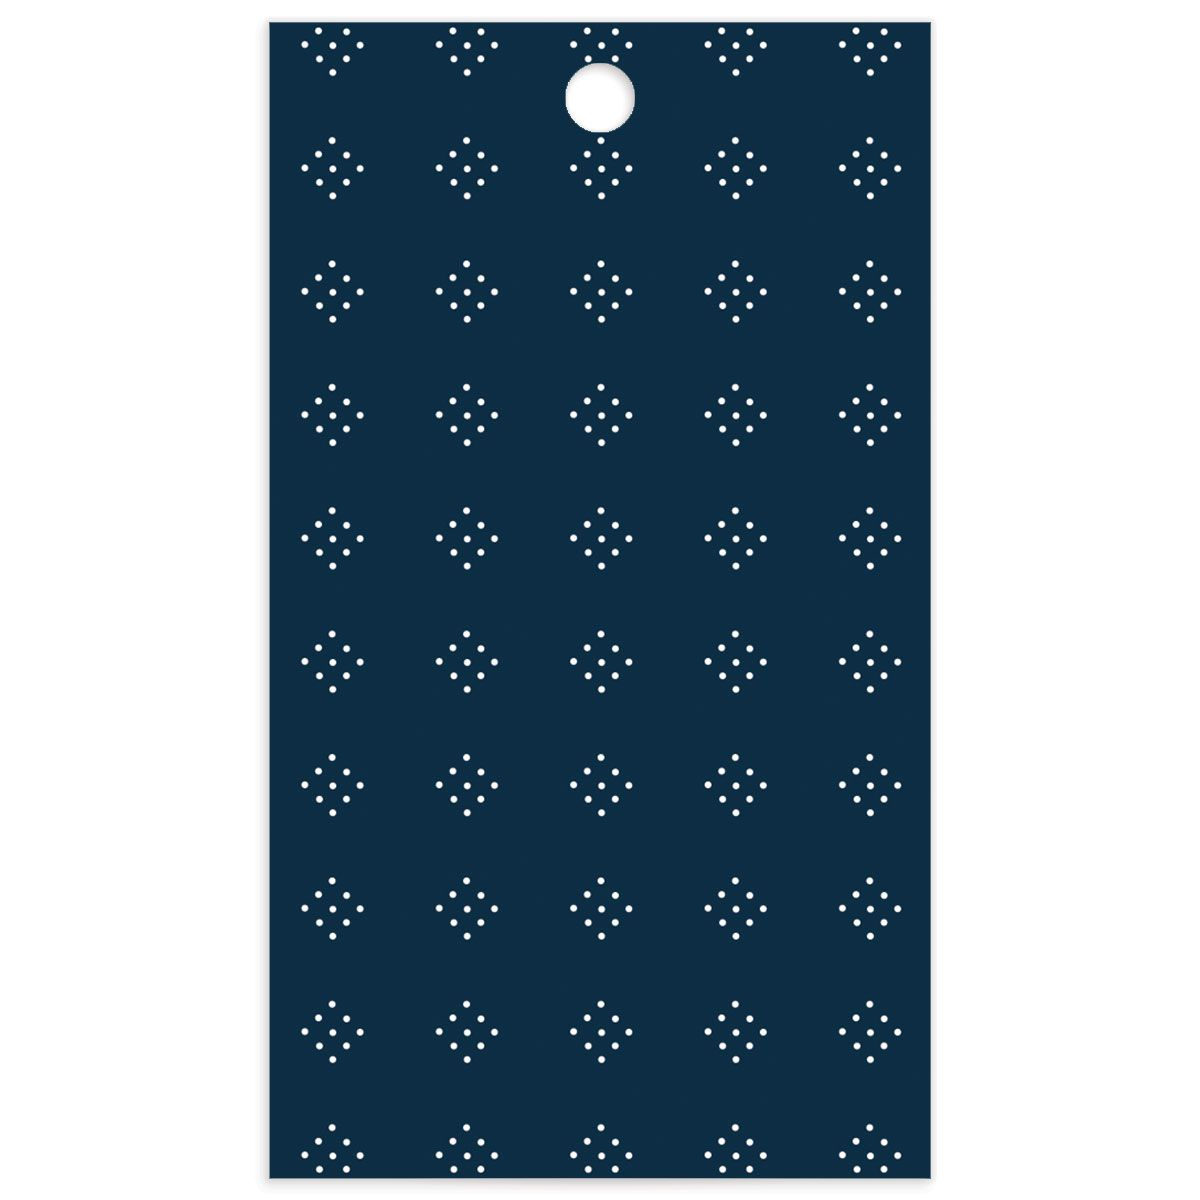 Formal Ampersand Wedding Gift Tag back in navy